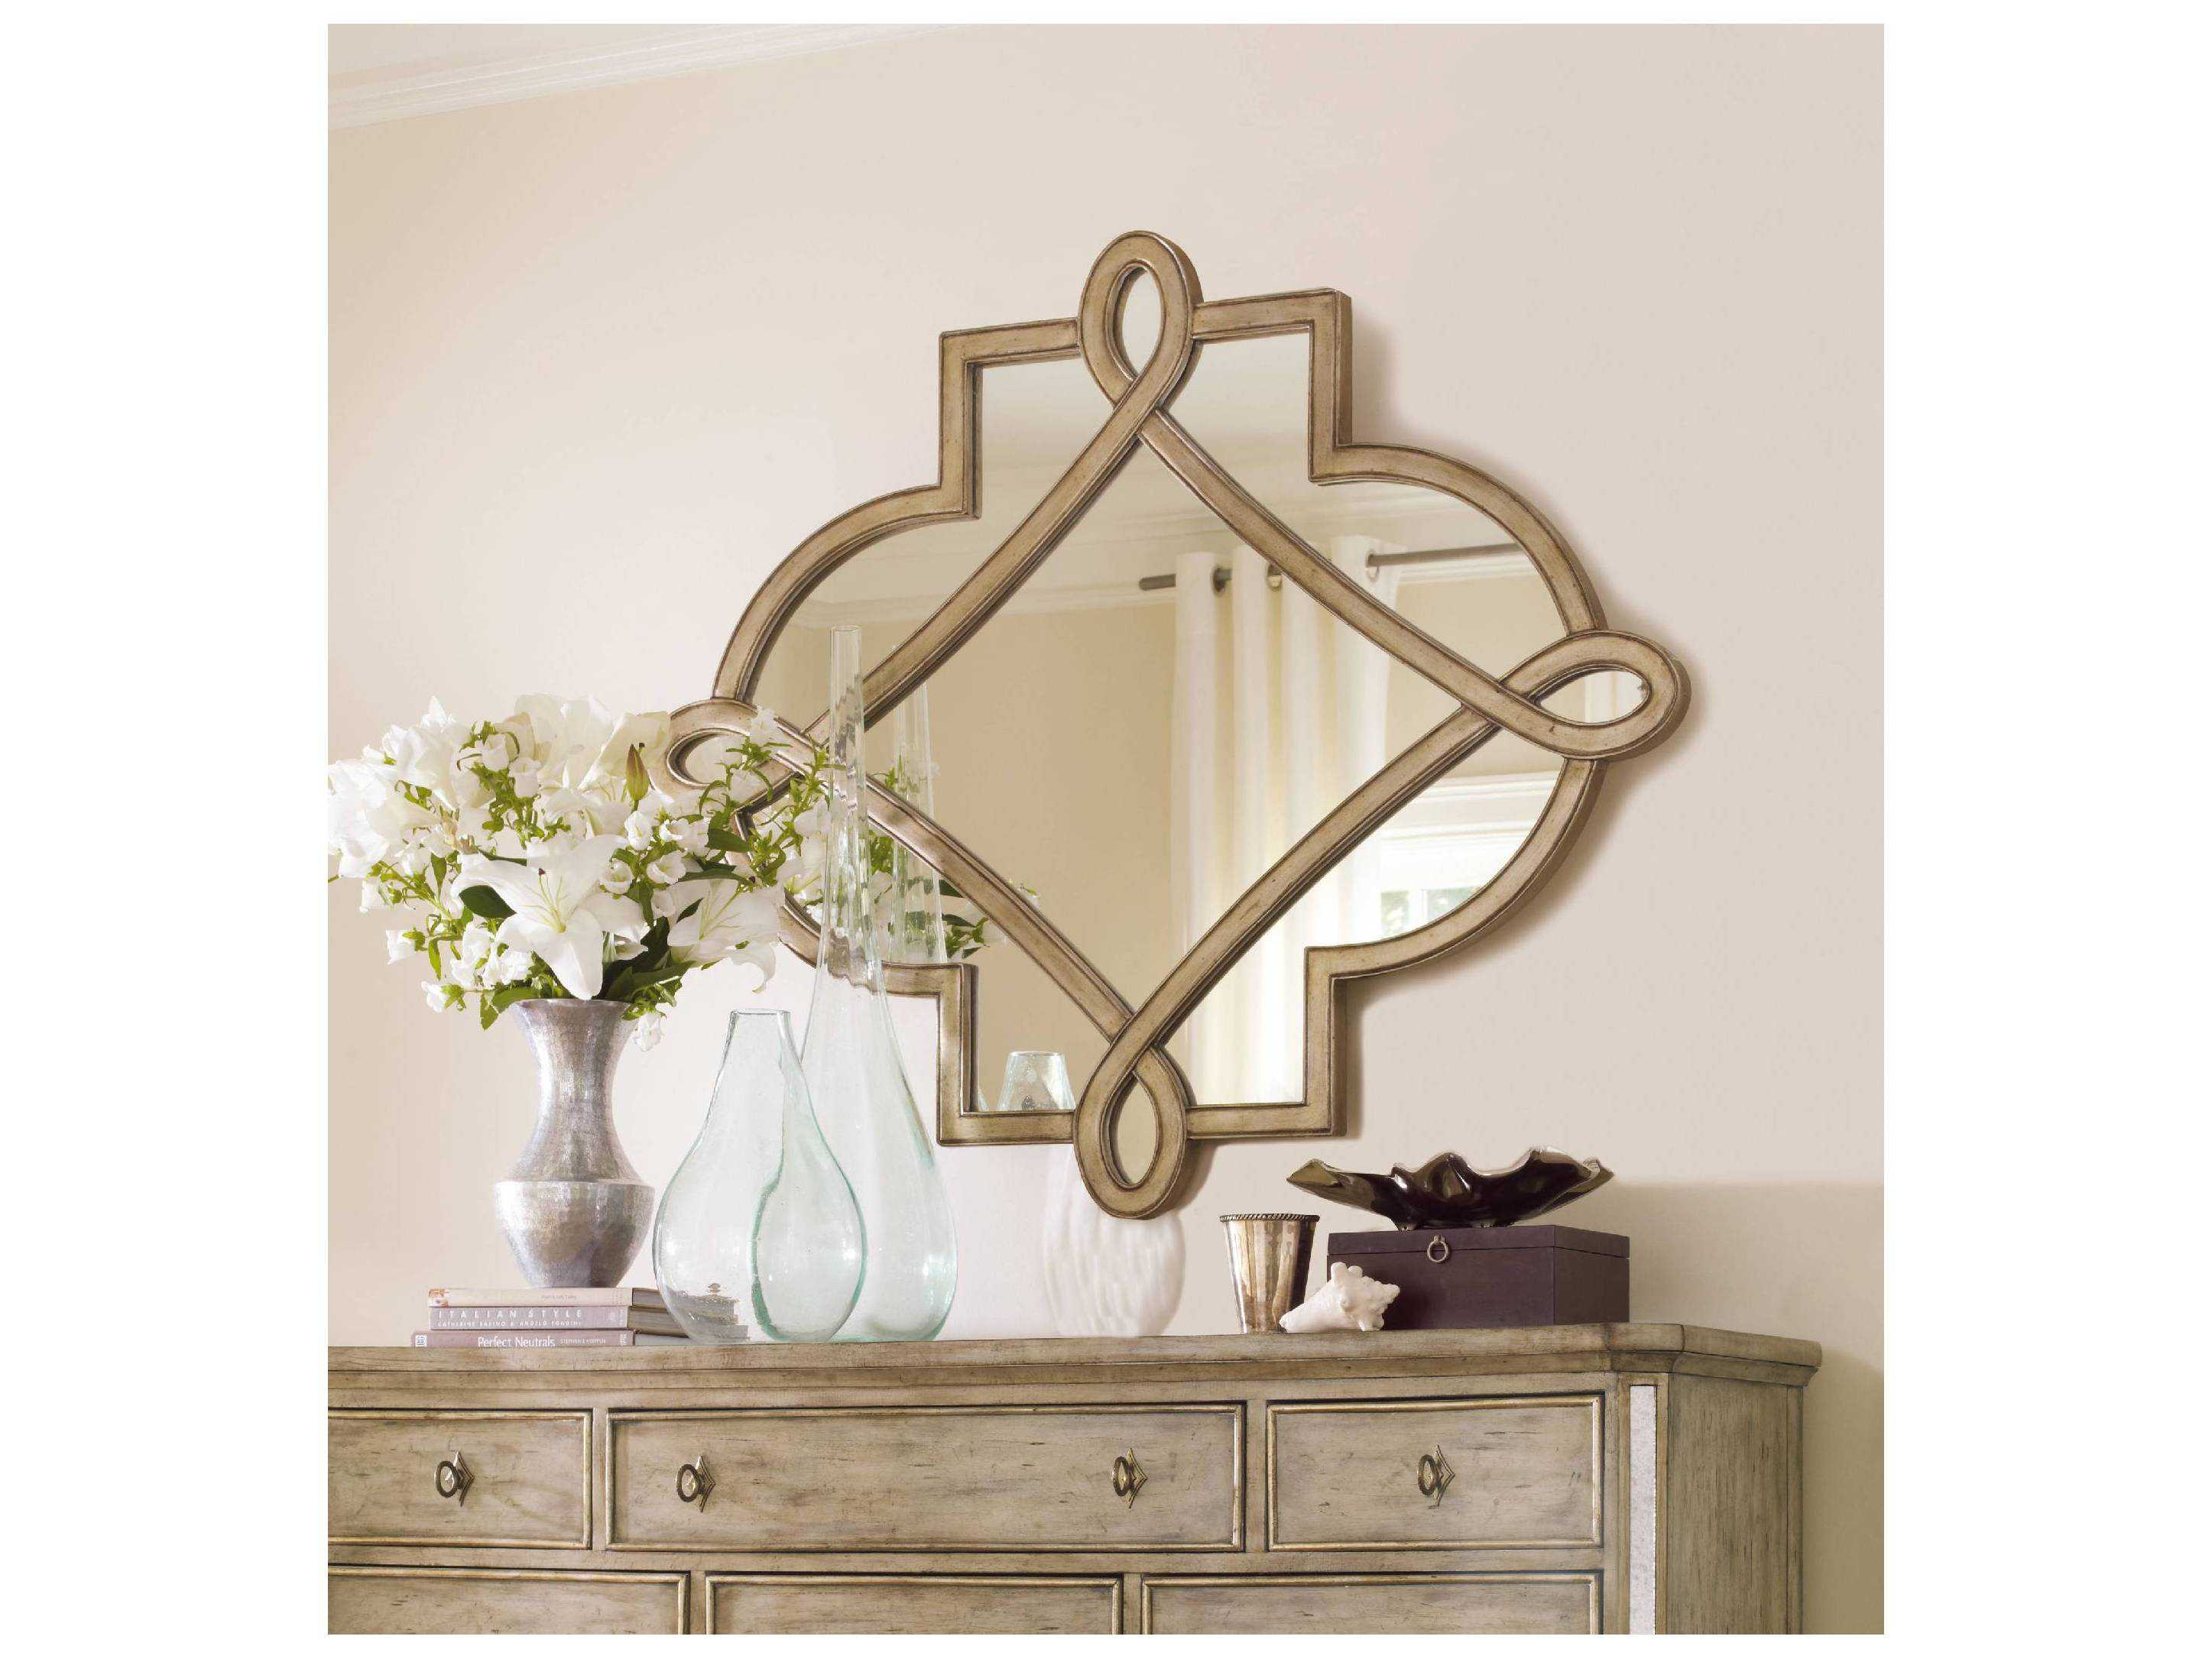 Hooker furniture sanctuary visage 49w x 41h landscape wall hooker furniture sanctuary visage 49w x 41h landscape wall mirror amipublicfo Gallery